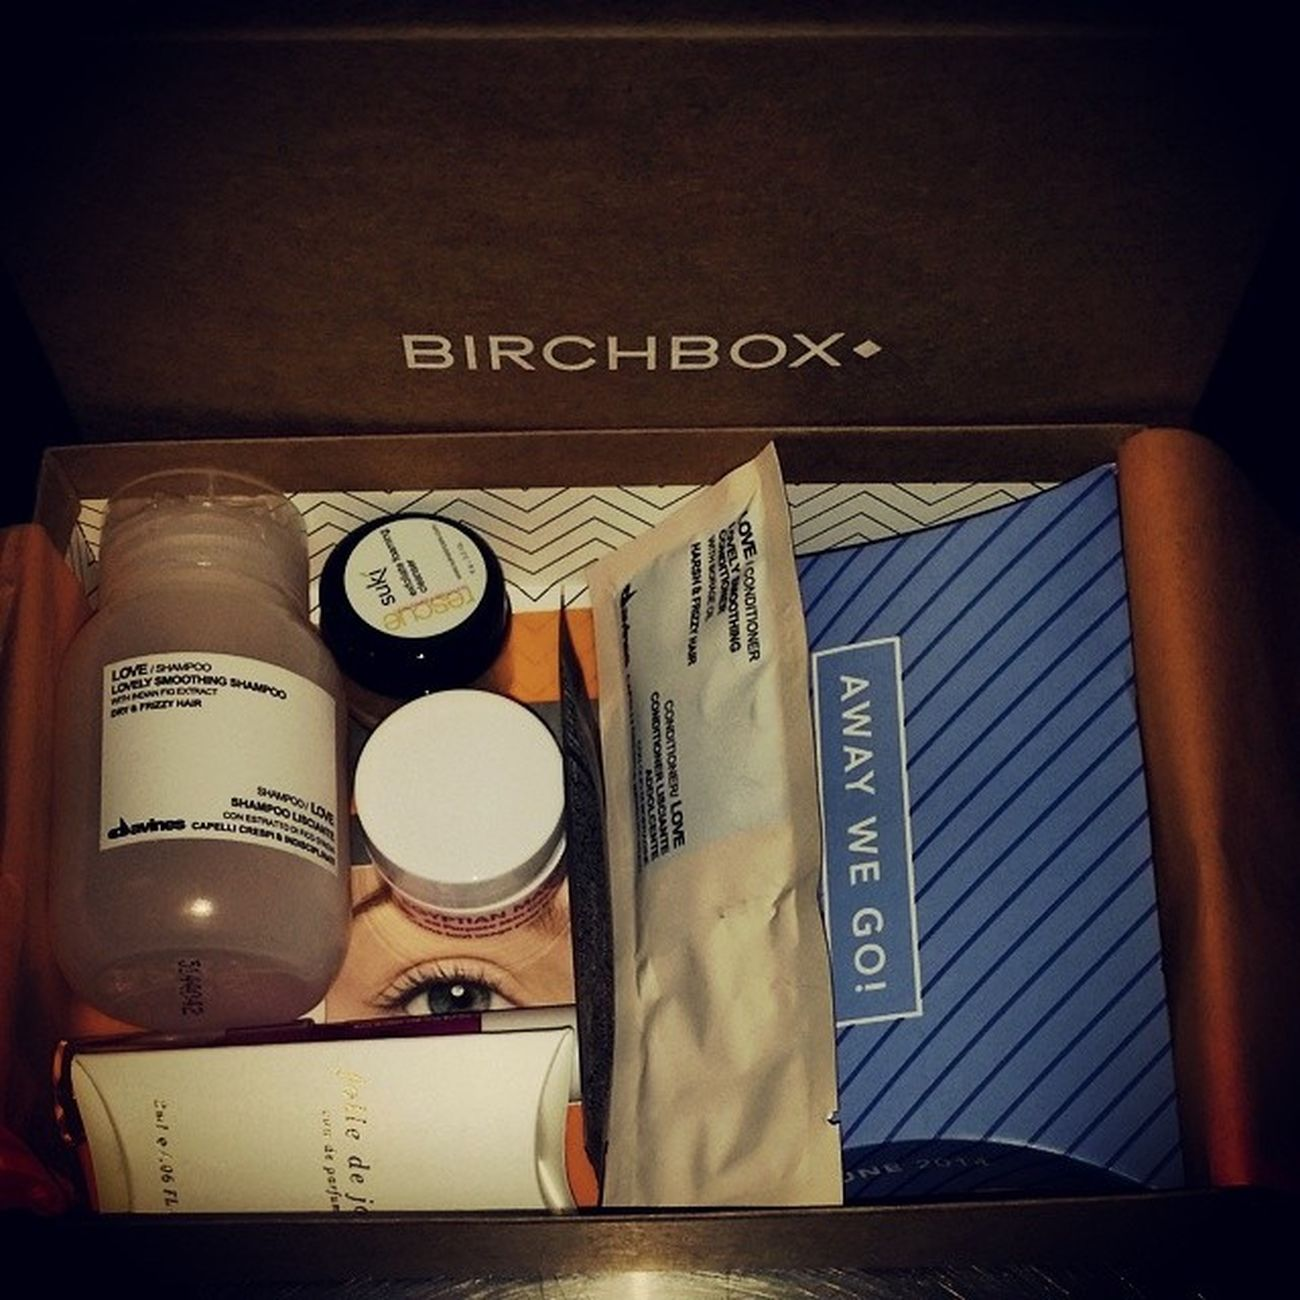 Super excited to get my first Birchbox